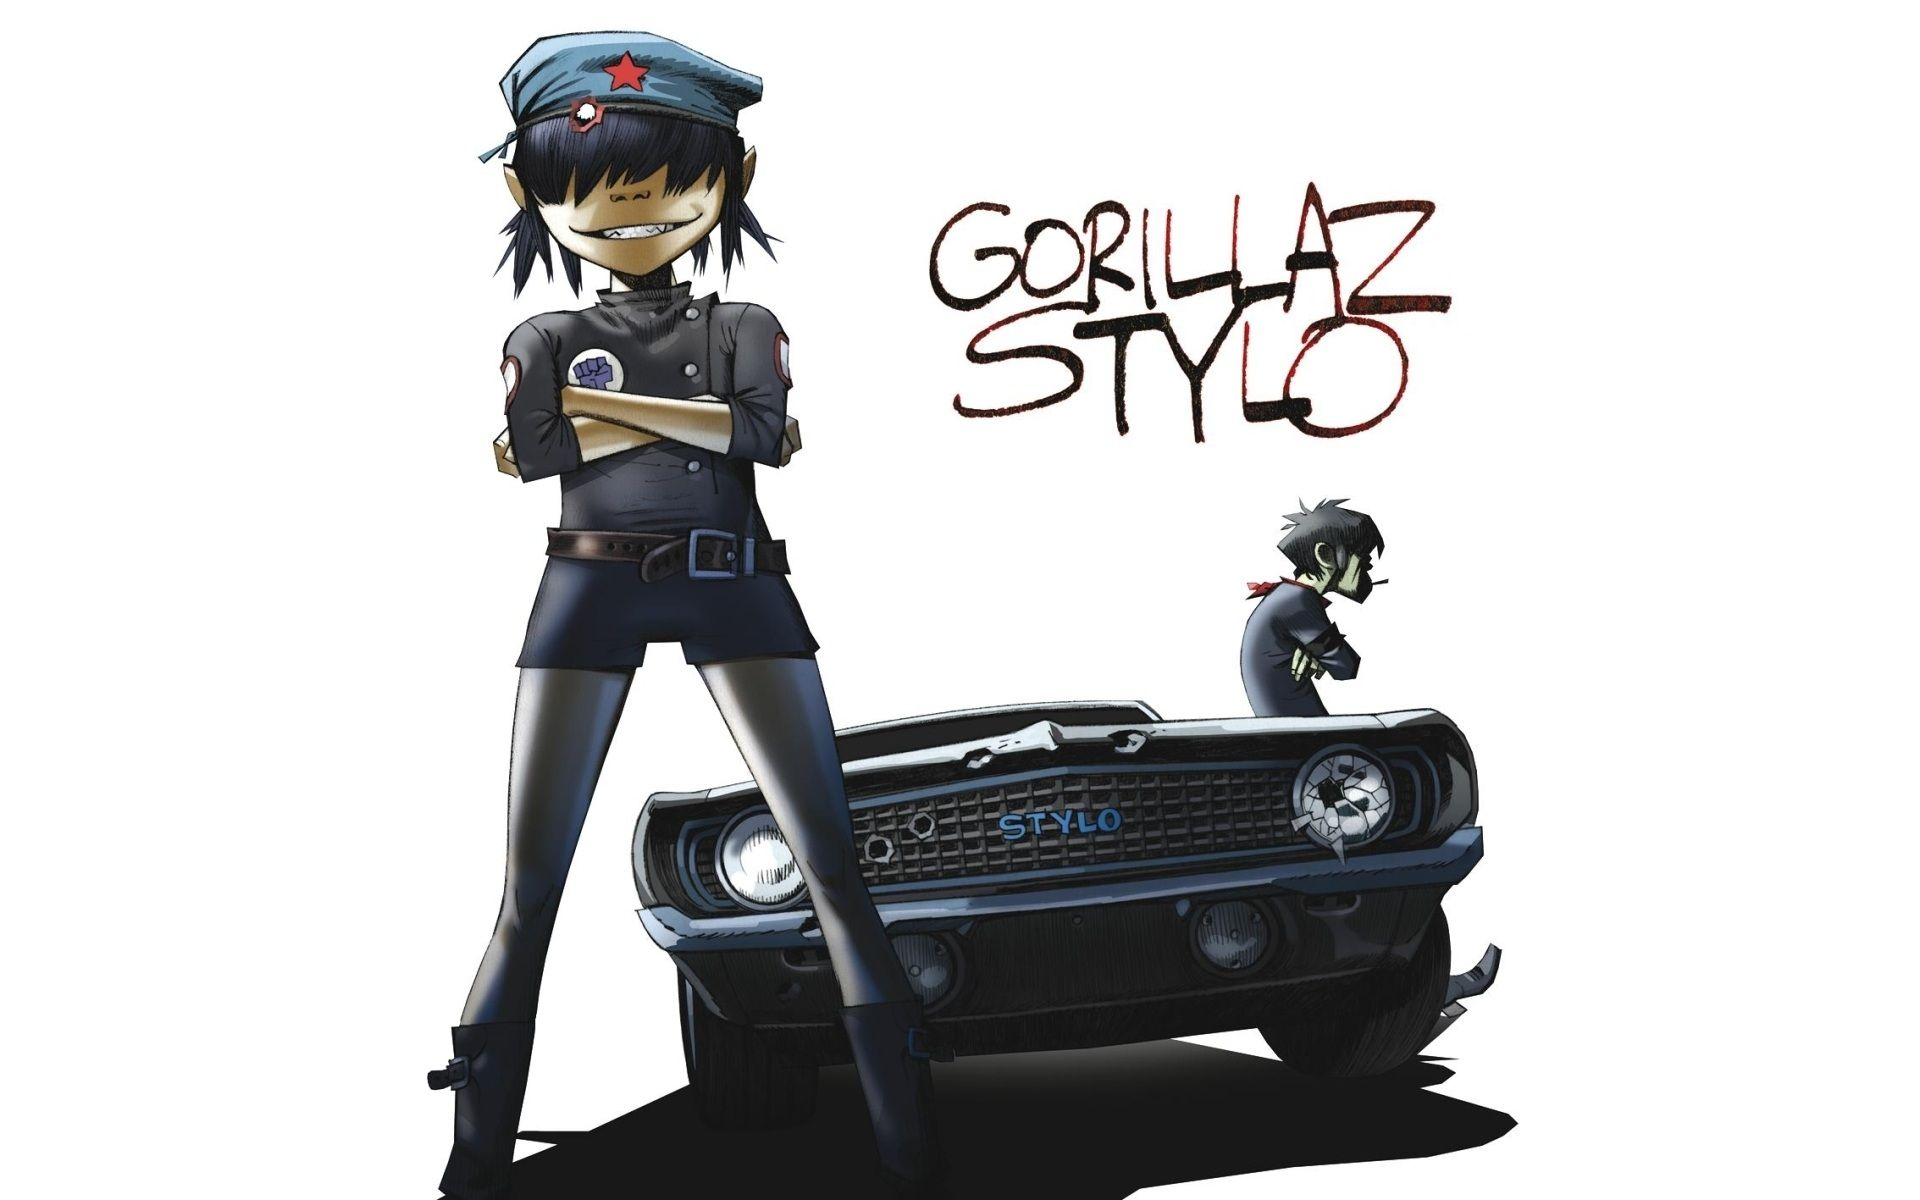 Wallpapers Gorillaz Noodle Stylo Music Hd Iphone Ipad